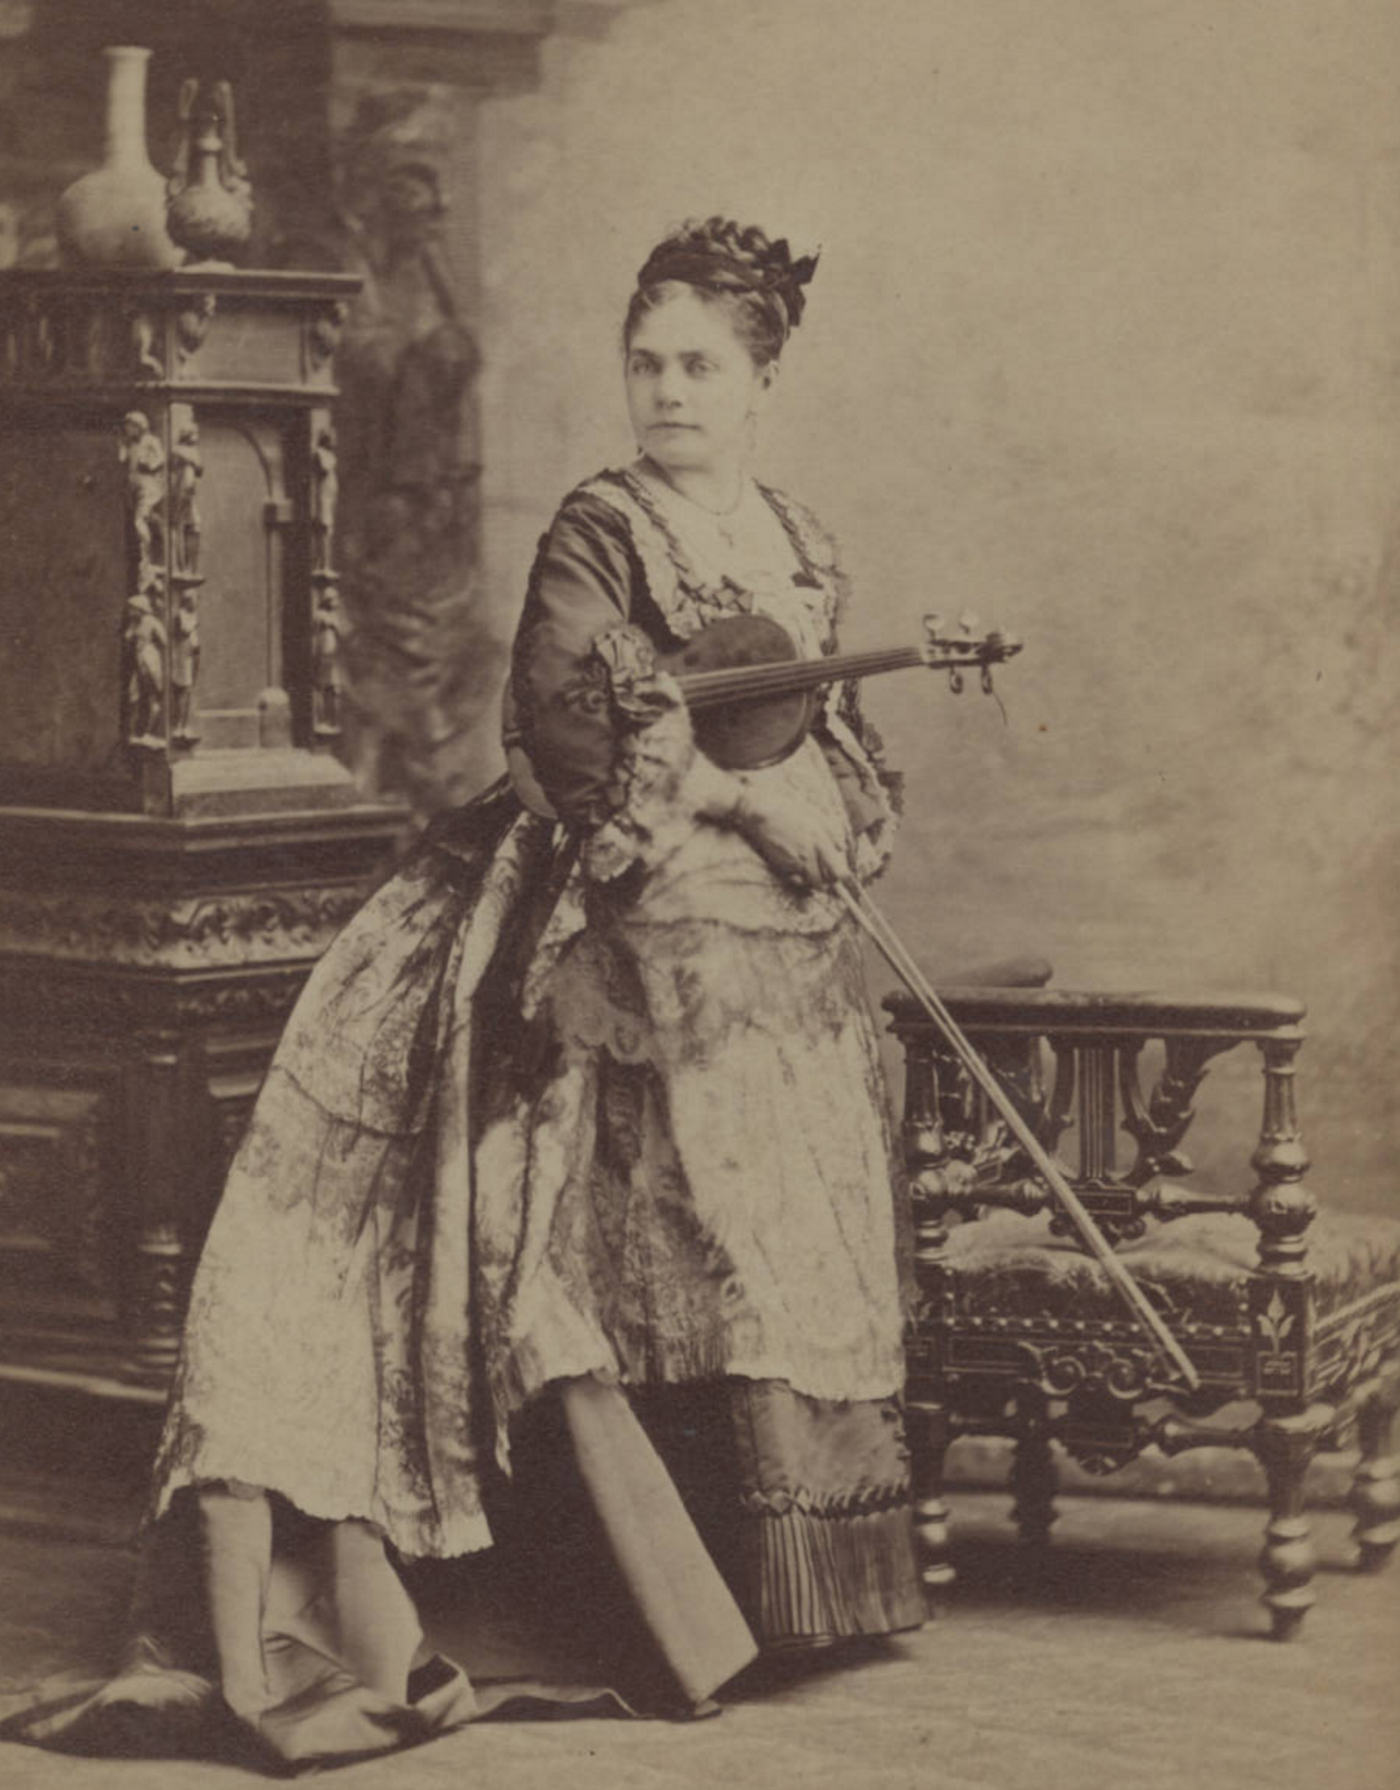 Cabinet photograph of violinist Camilla Urso (19th century) (via University of South Carolina. Irvin Department of Rare Books and Special Collections)